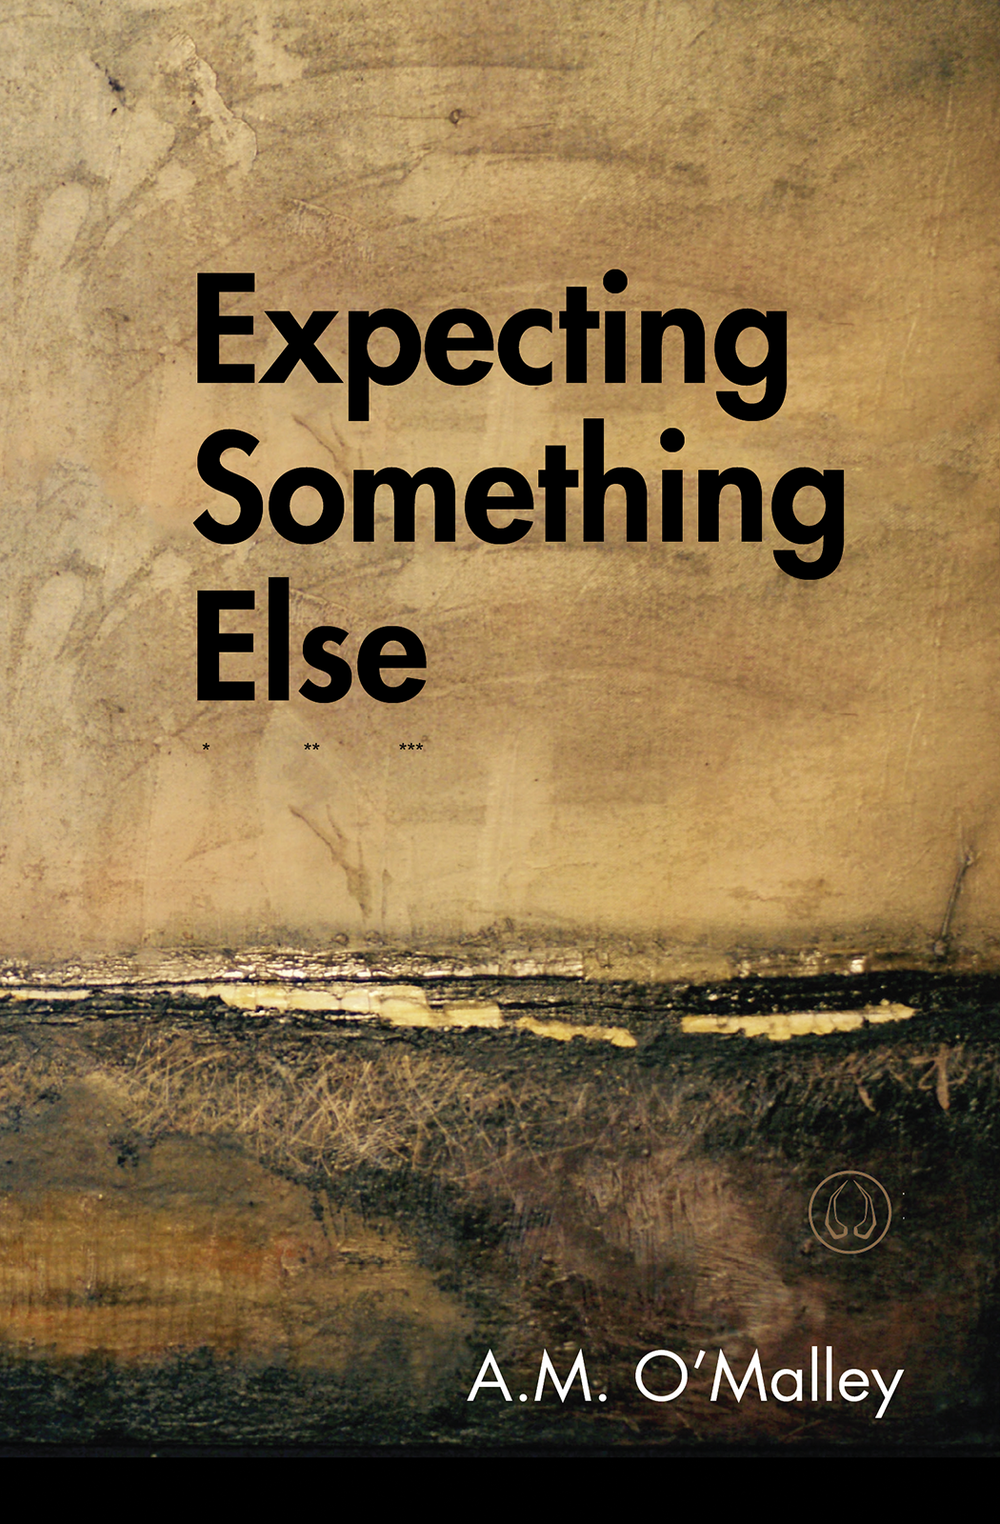 Expecting Something Else by A. M. O'Malley (University of Hell Press, 2016)